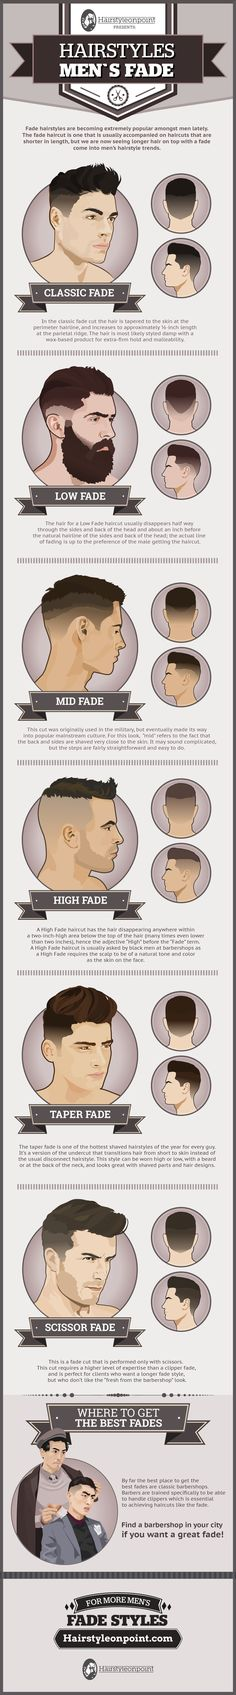 fade hairstyles for men infographic http://www.99wtf.net/men/popular-hairstyles-men-2017/